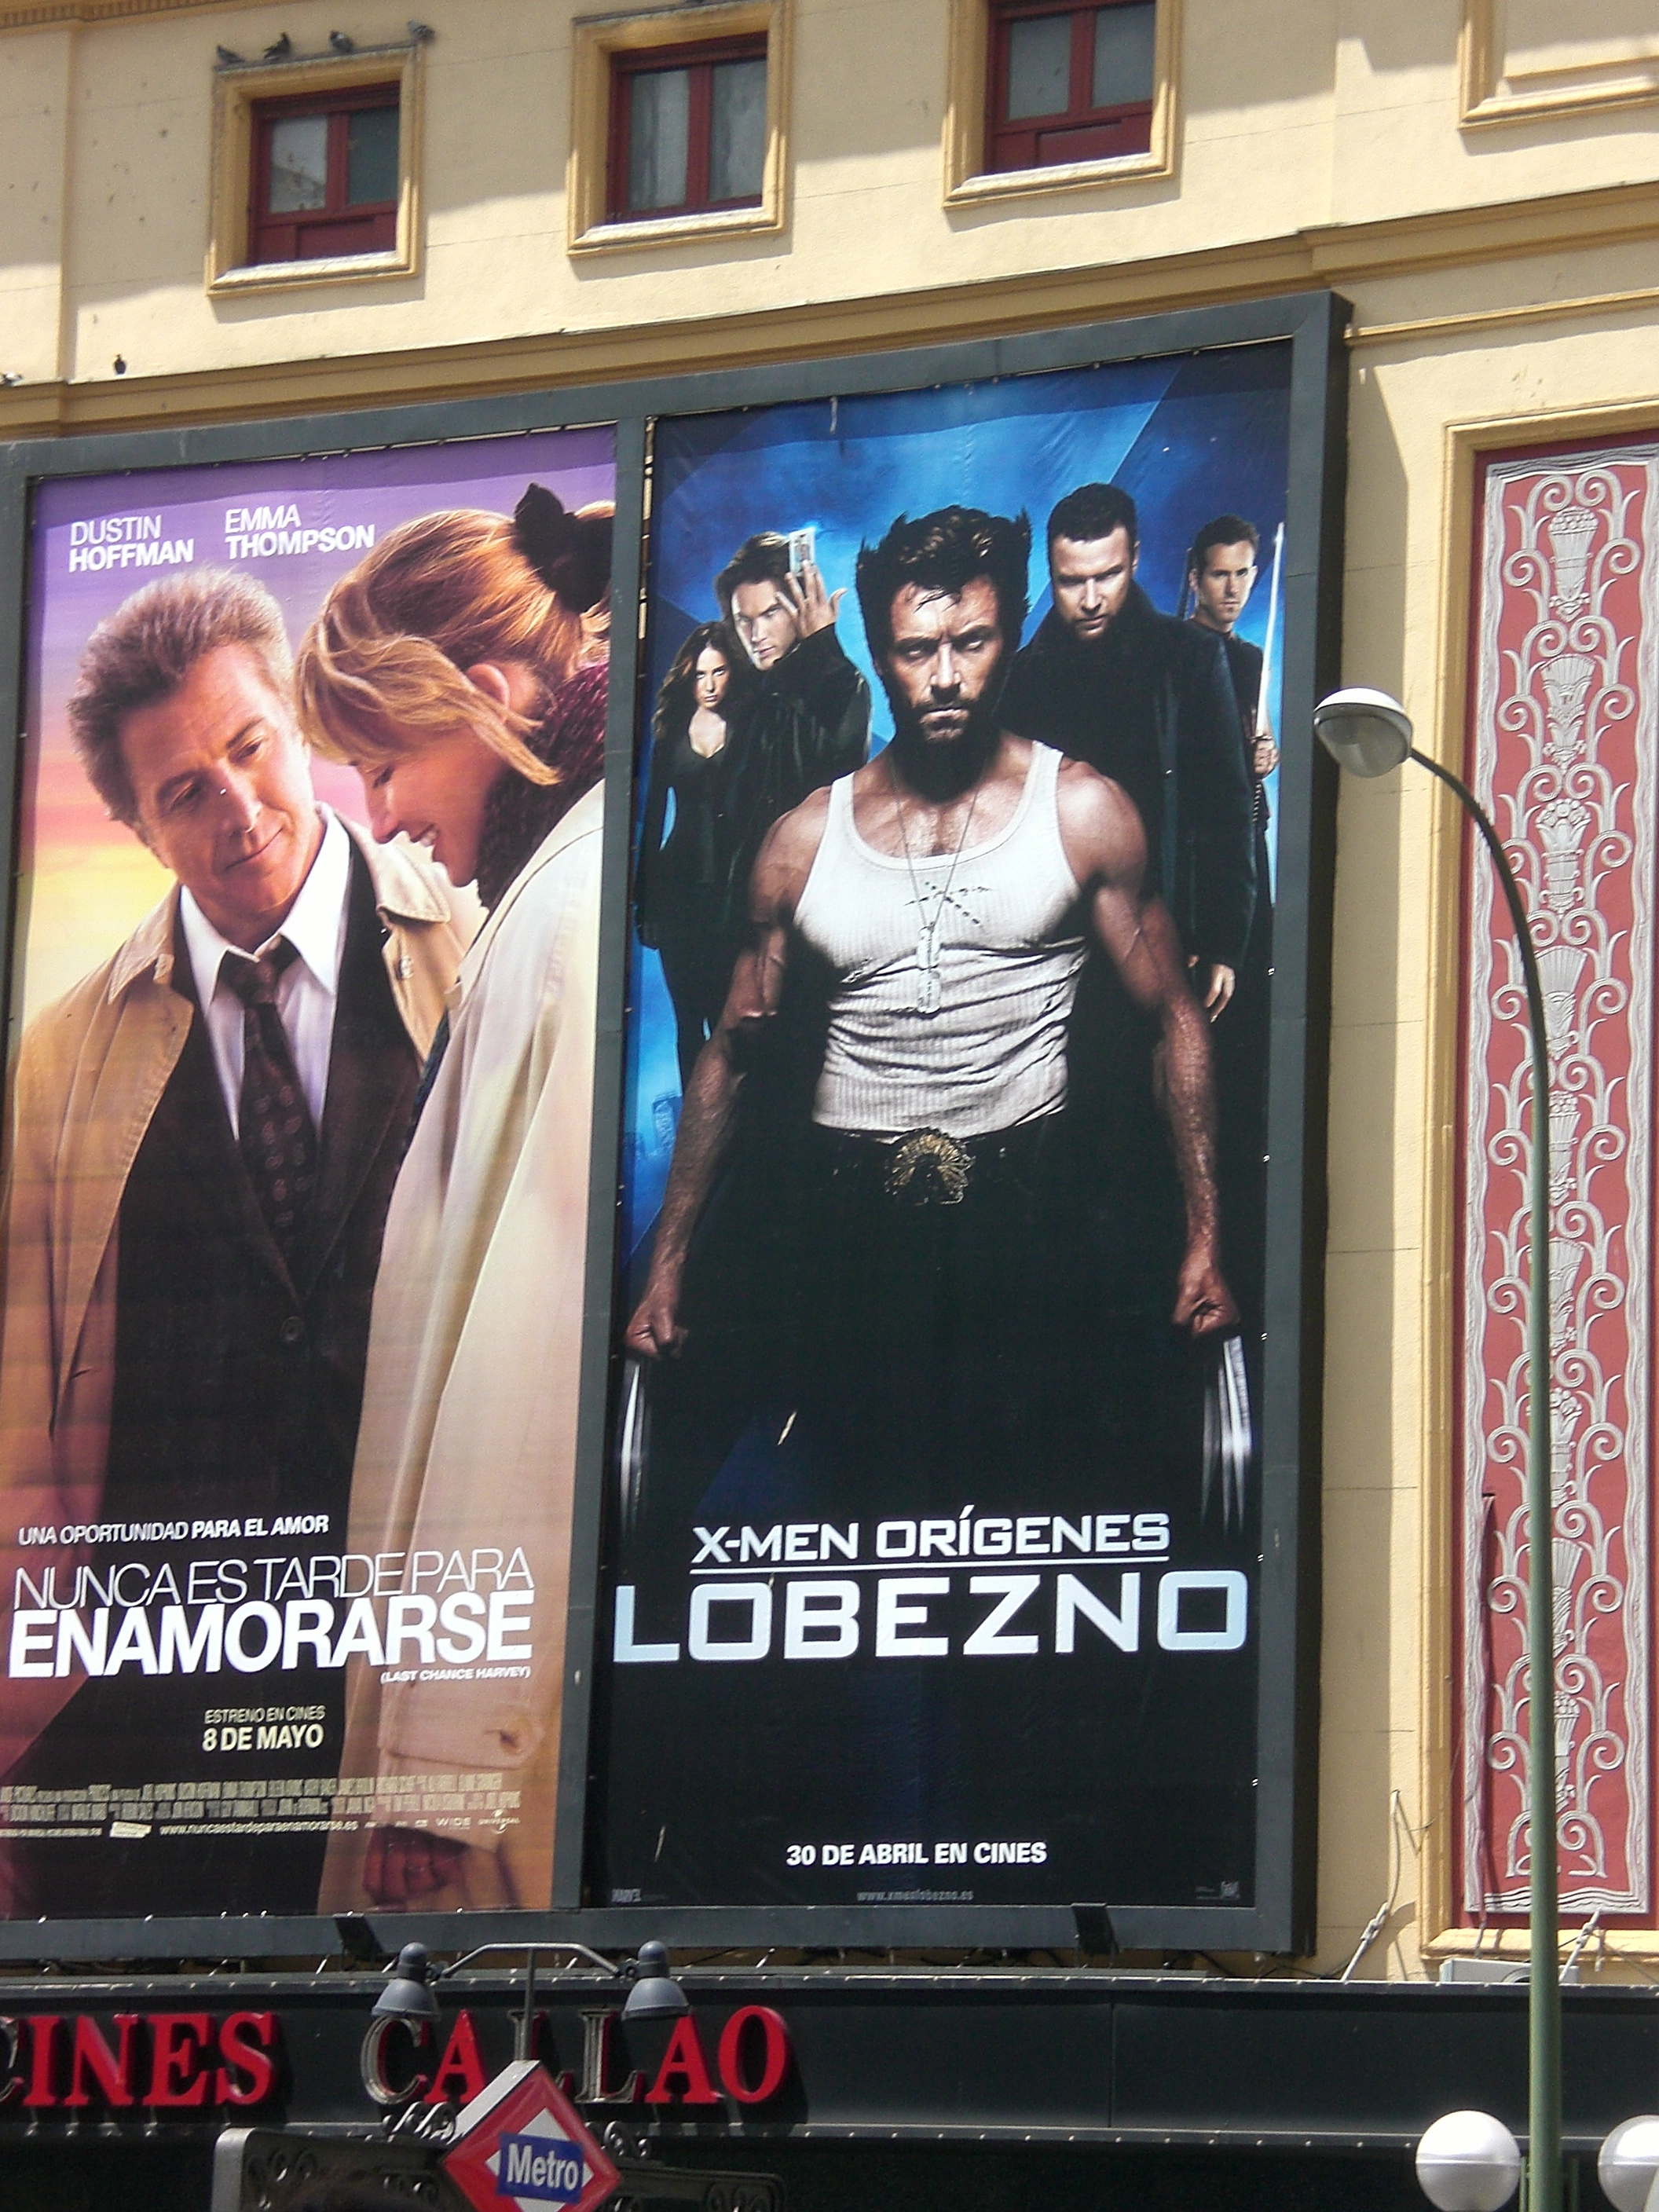 Lobezno movie poster